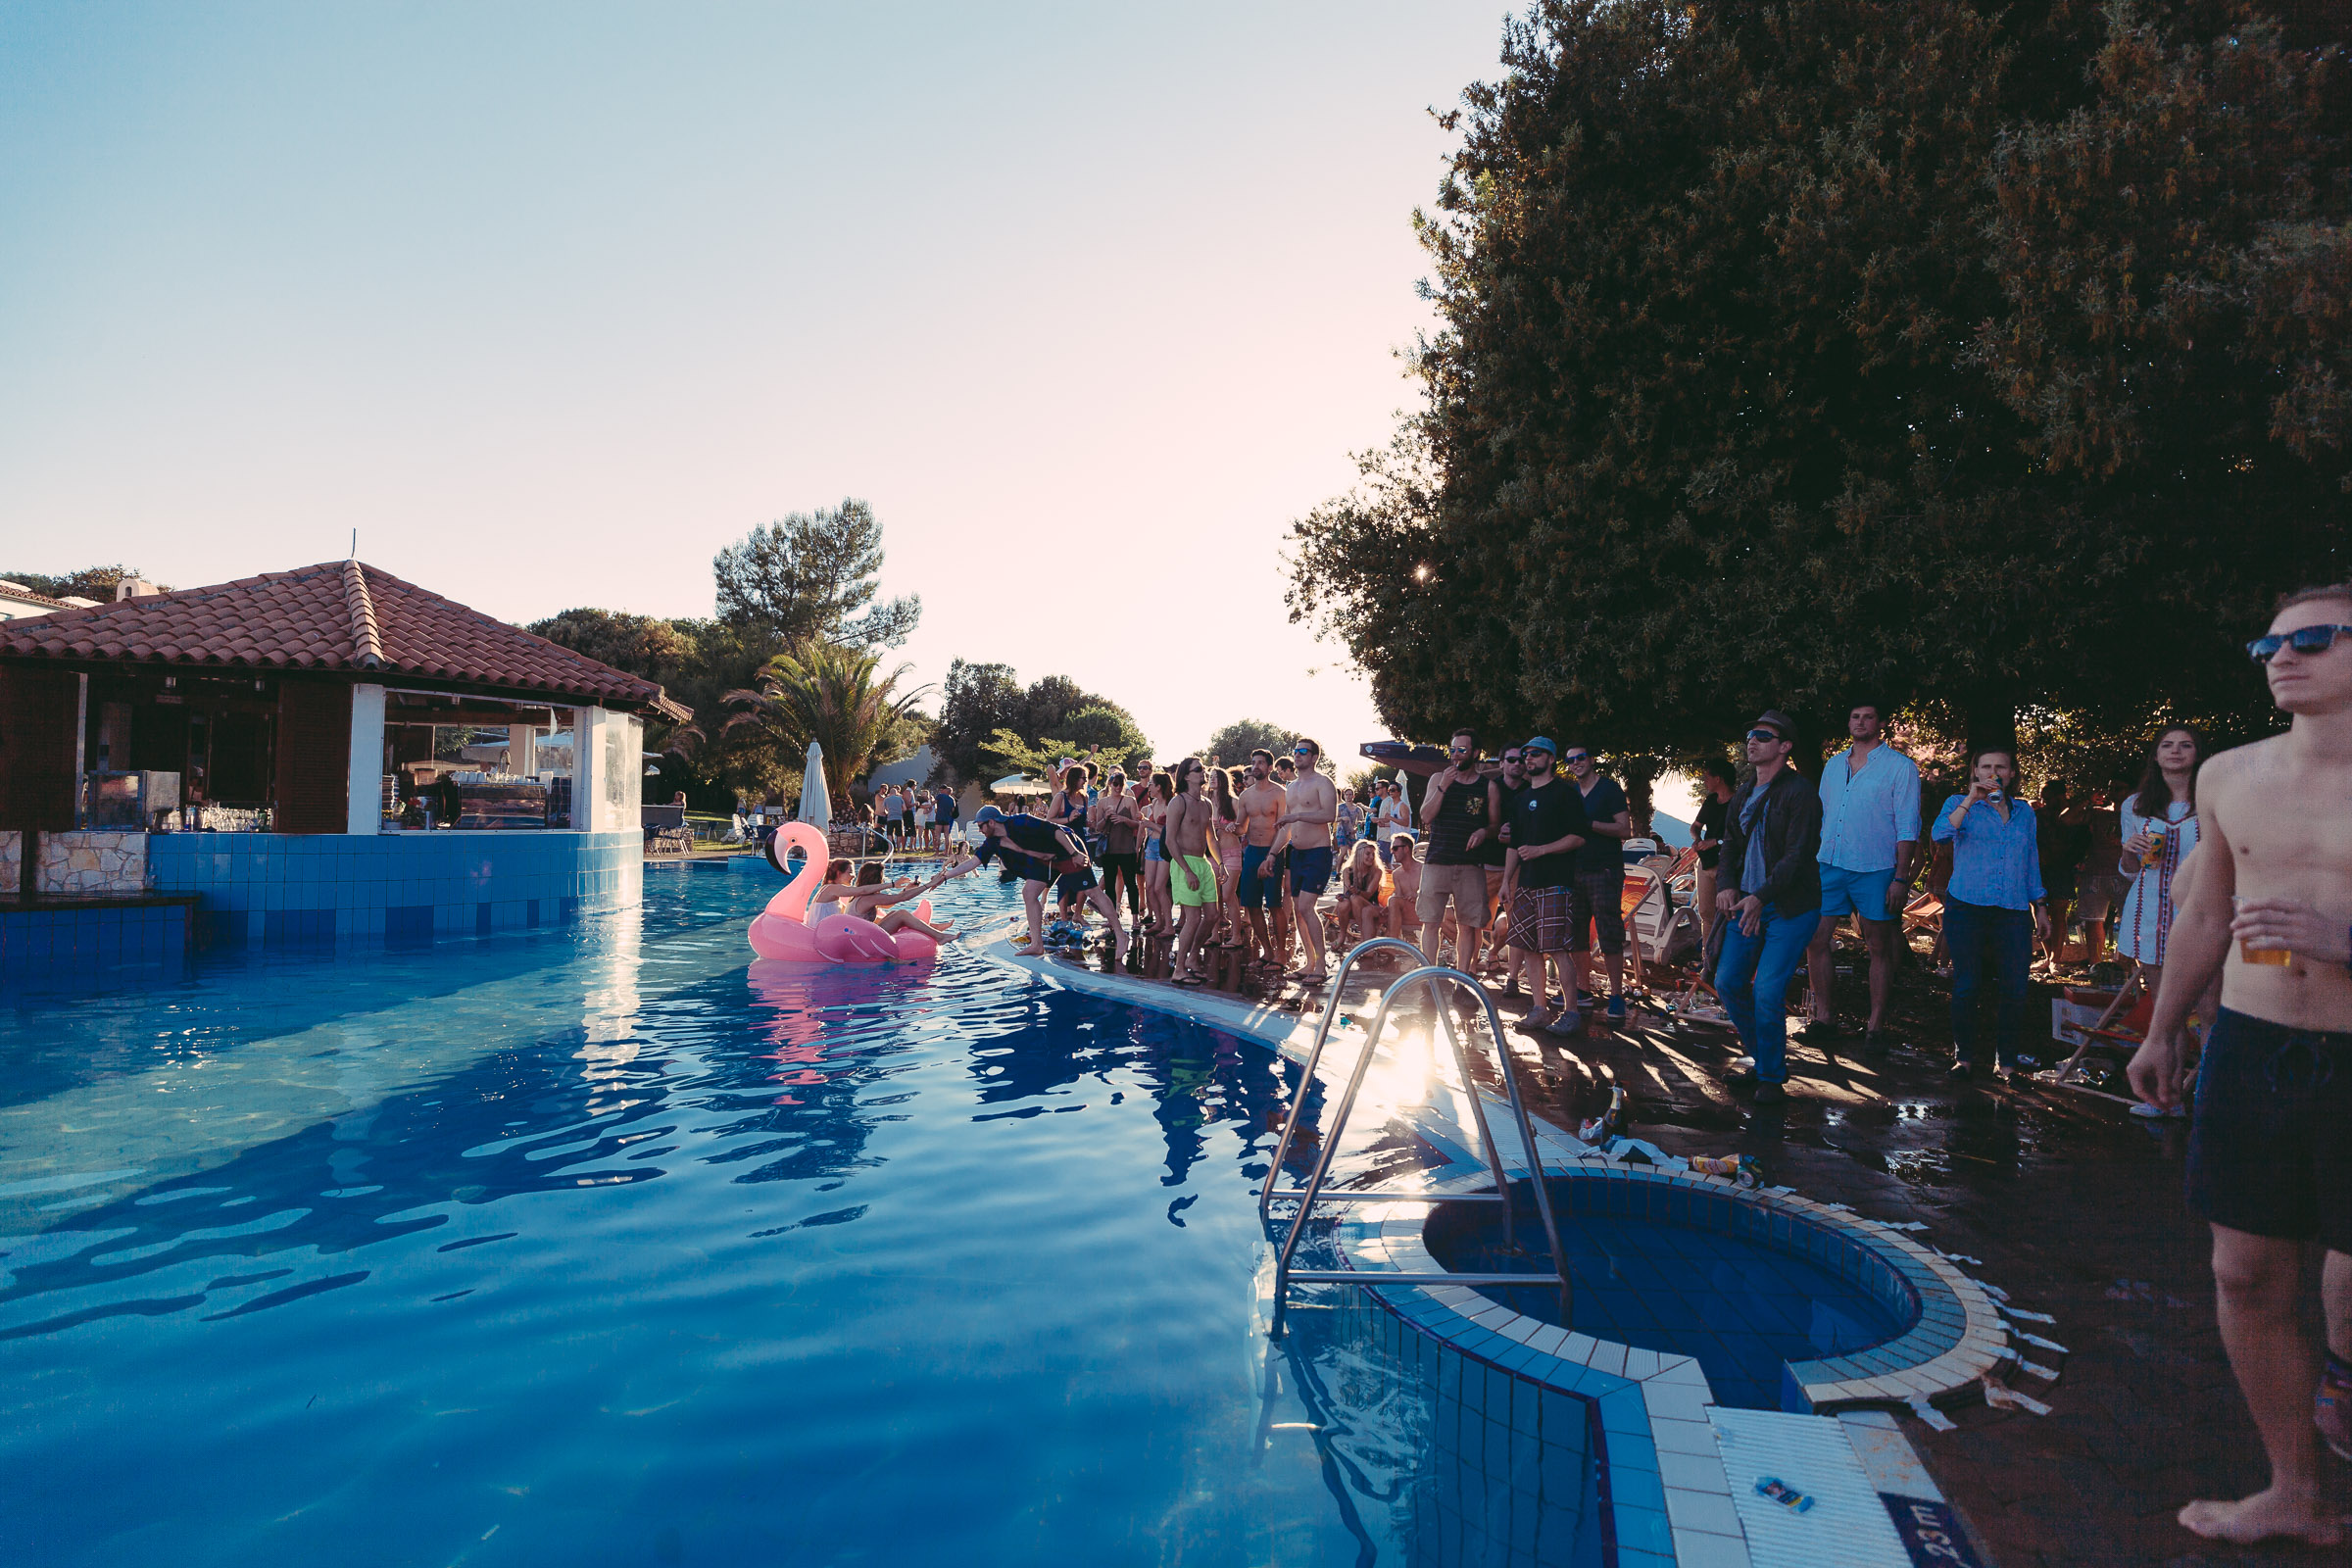 Lighthouse Festival 2017, Zalando, Porec, Hip Hop, Poolparty